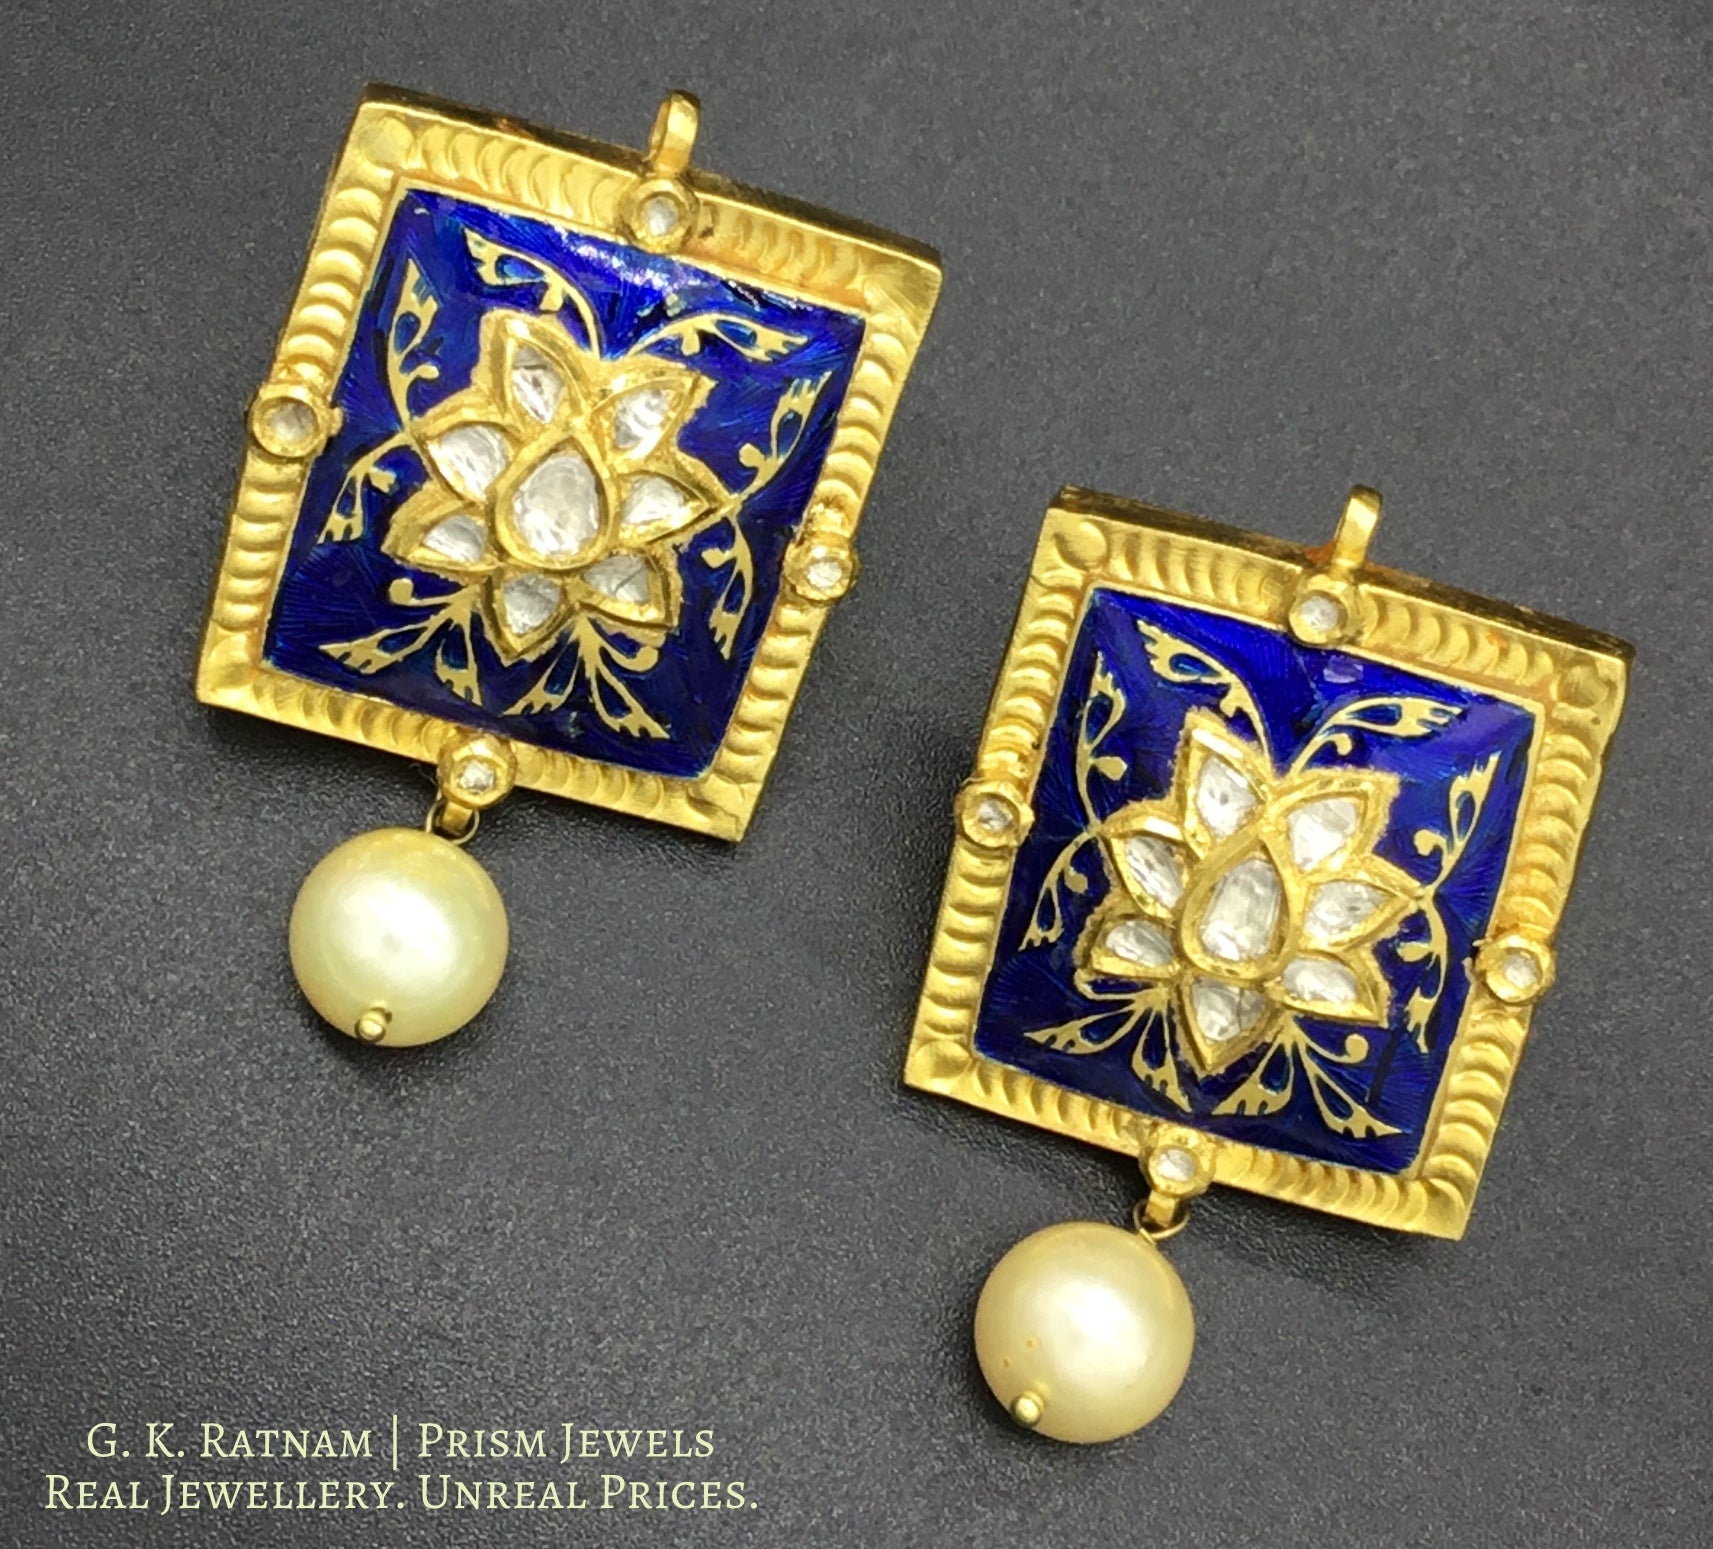 18k Gold and Diamond Polki square Pendant Set with soothing royal blue meenakari and uncut tukdis linked together - G. K. Ratnam